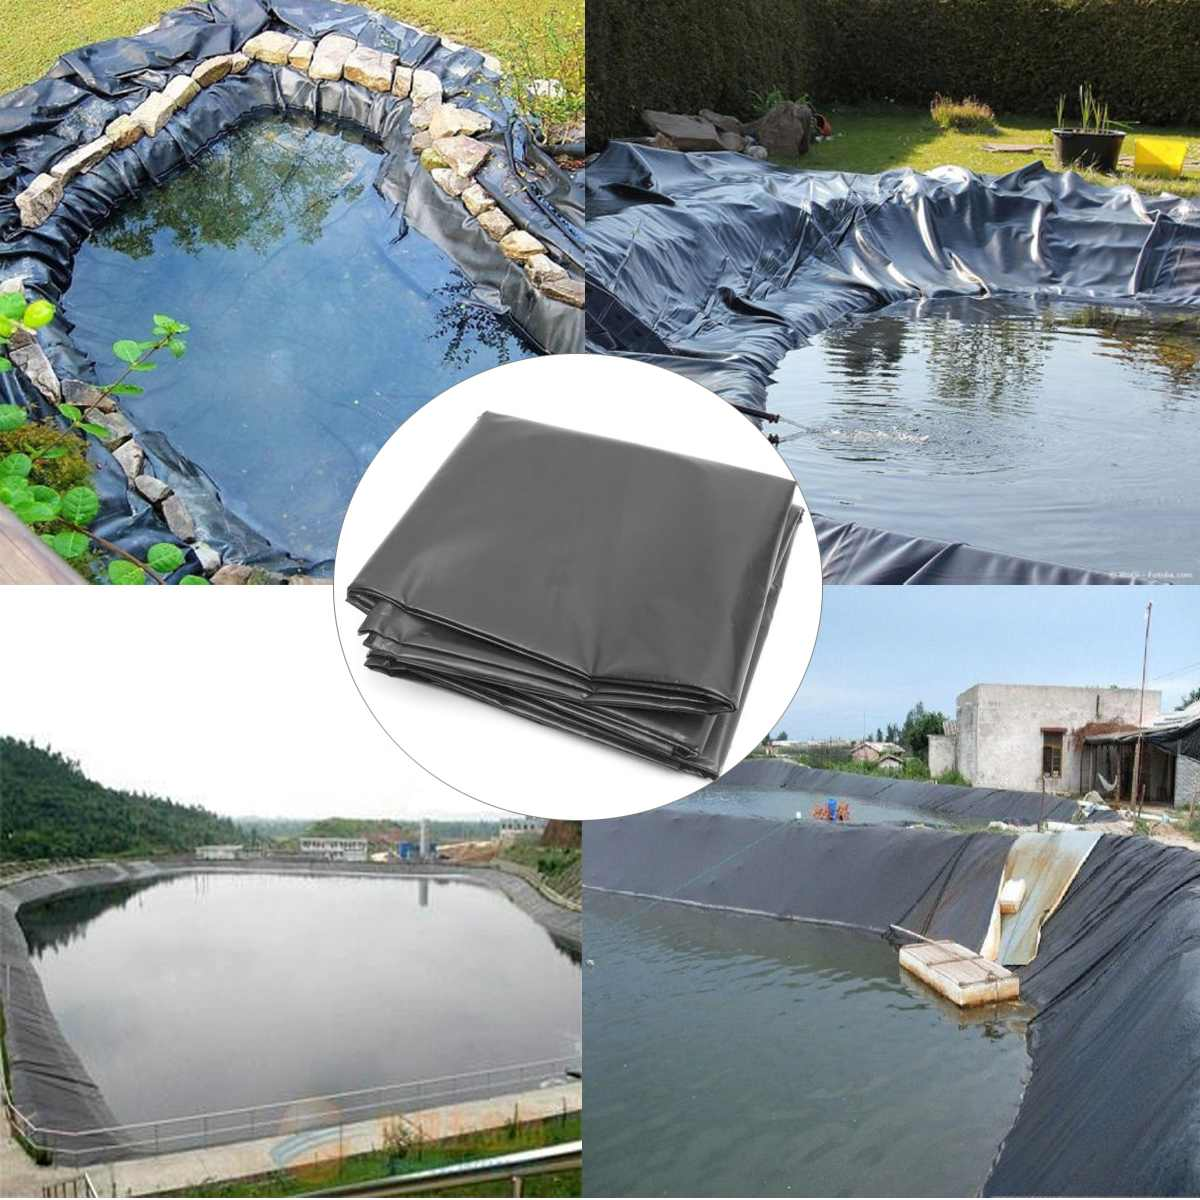 7x7m / 5x5m / 4x4m HDPE Fish Pond Liner Garden Pond Landscaping Pool Reinforced Thick Heavy Duty Waterproof Membrane Liner Cloth7x7m / 5x5m / 4x4m HDPE Fish Pond Liner Garden Pond Landscaping Pool Reinforced Thick Heavy Duty Waterproof Membrane Liner Cloth